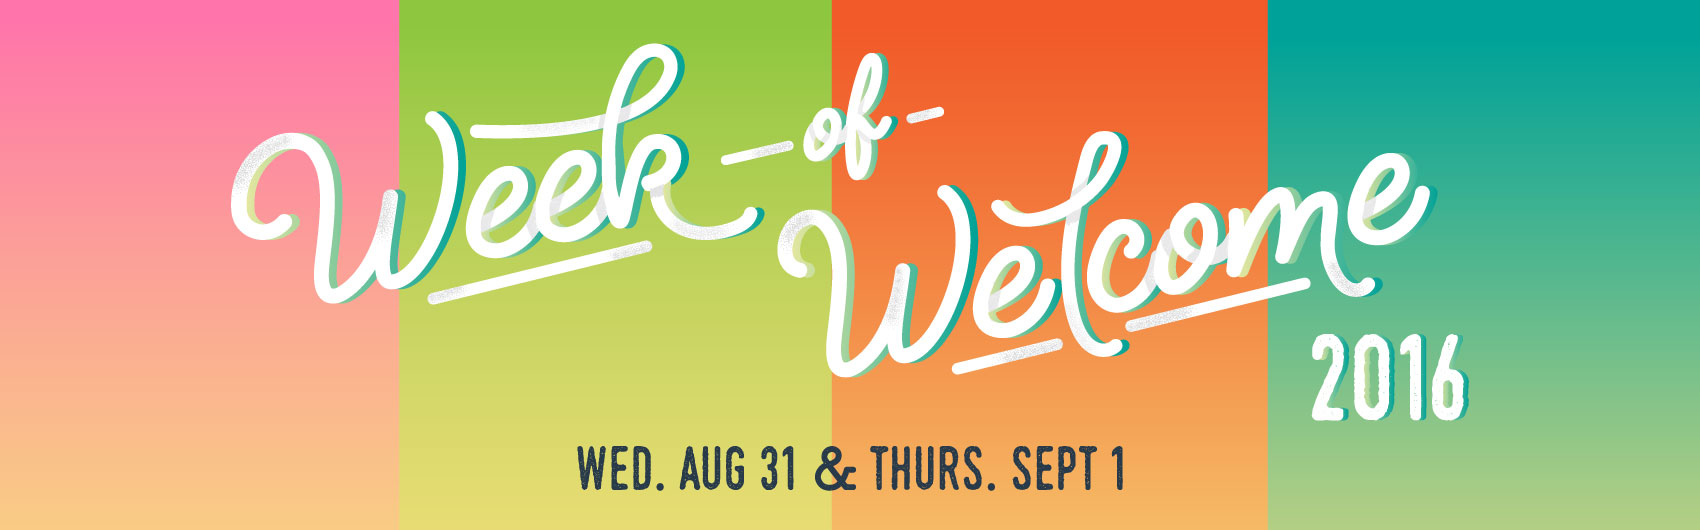 Week of Welcome banner